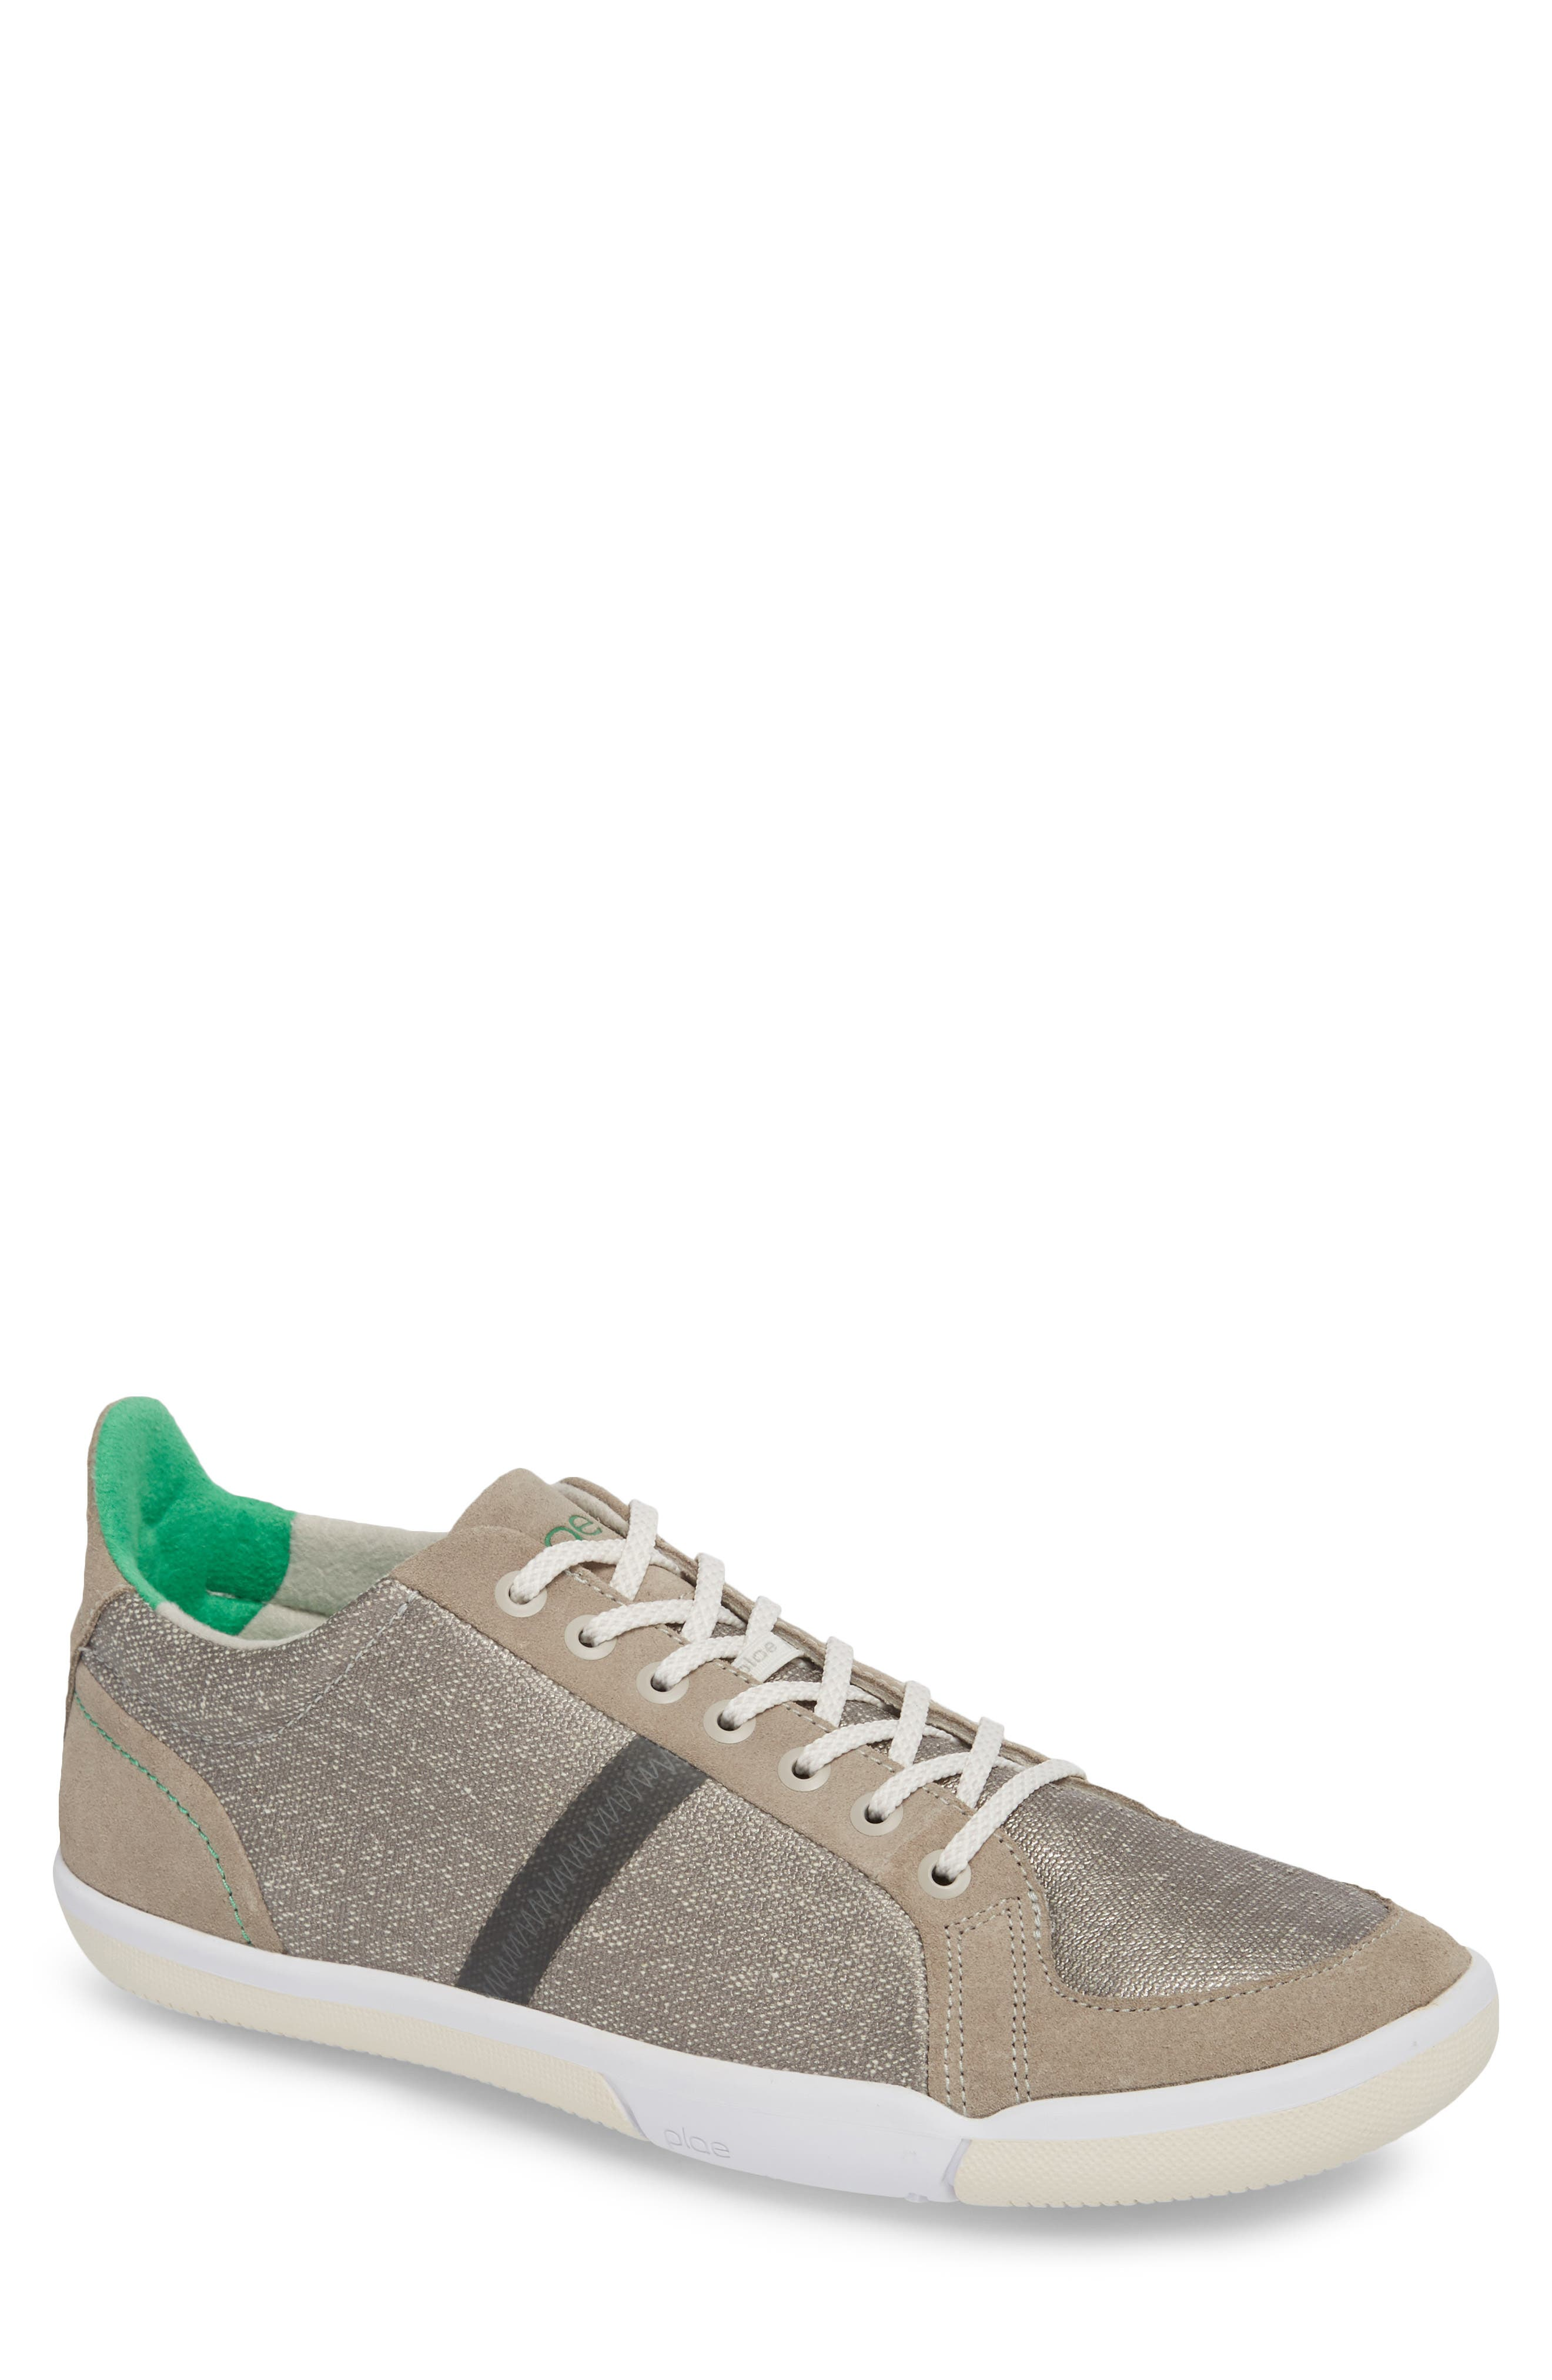 Prospect Low Top Sneaker,                         Main,                         color, STONE